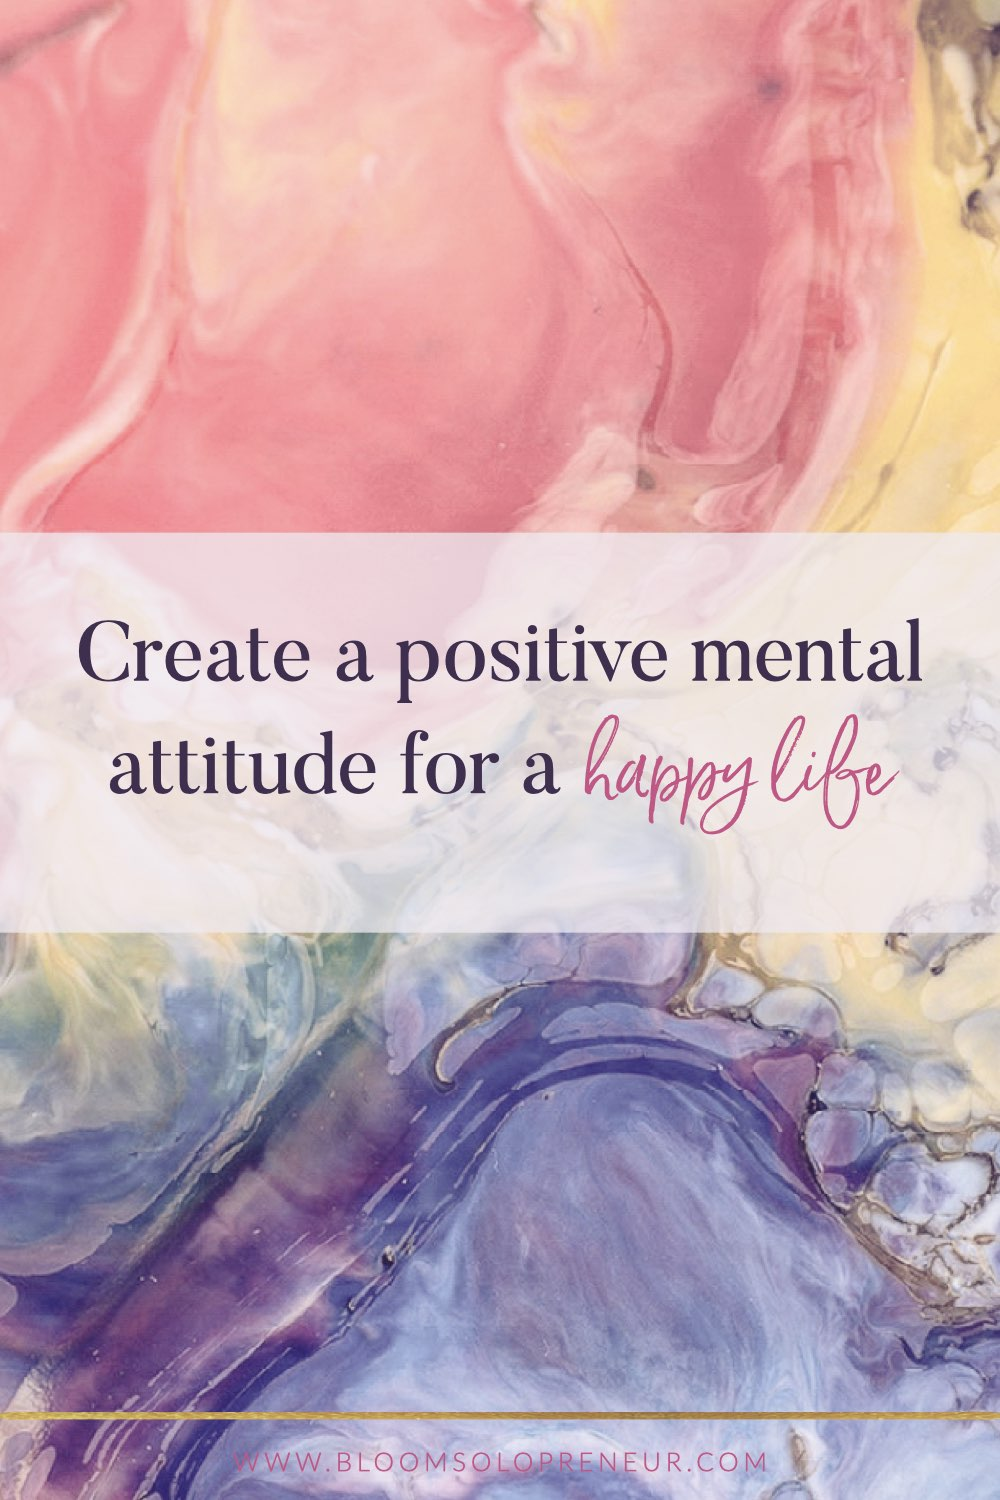 Our outlook on life determines everything. If we have a positive mental attitude it will impact how we respond to our circumstances. Your attitude affects your thoughts emotions and all your actions. This, in turn, will determine the results you experience. No person has a positive mental attitude all the time. There are times when you feel positive and enthusiastic and where everything seems possible. A negative mental attitude could mean that achieving goals will be difficult #bloomsolopreneur